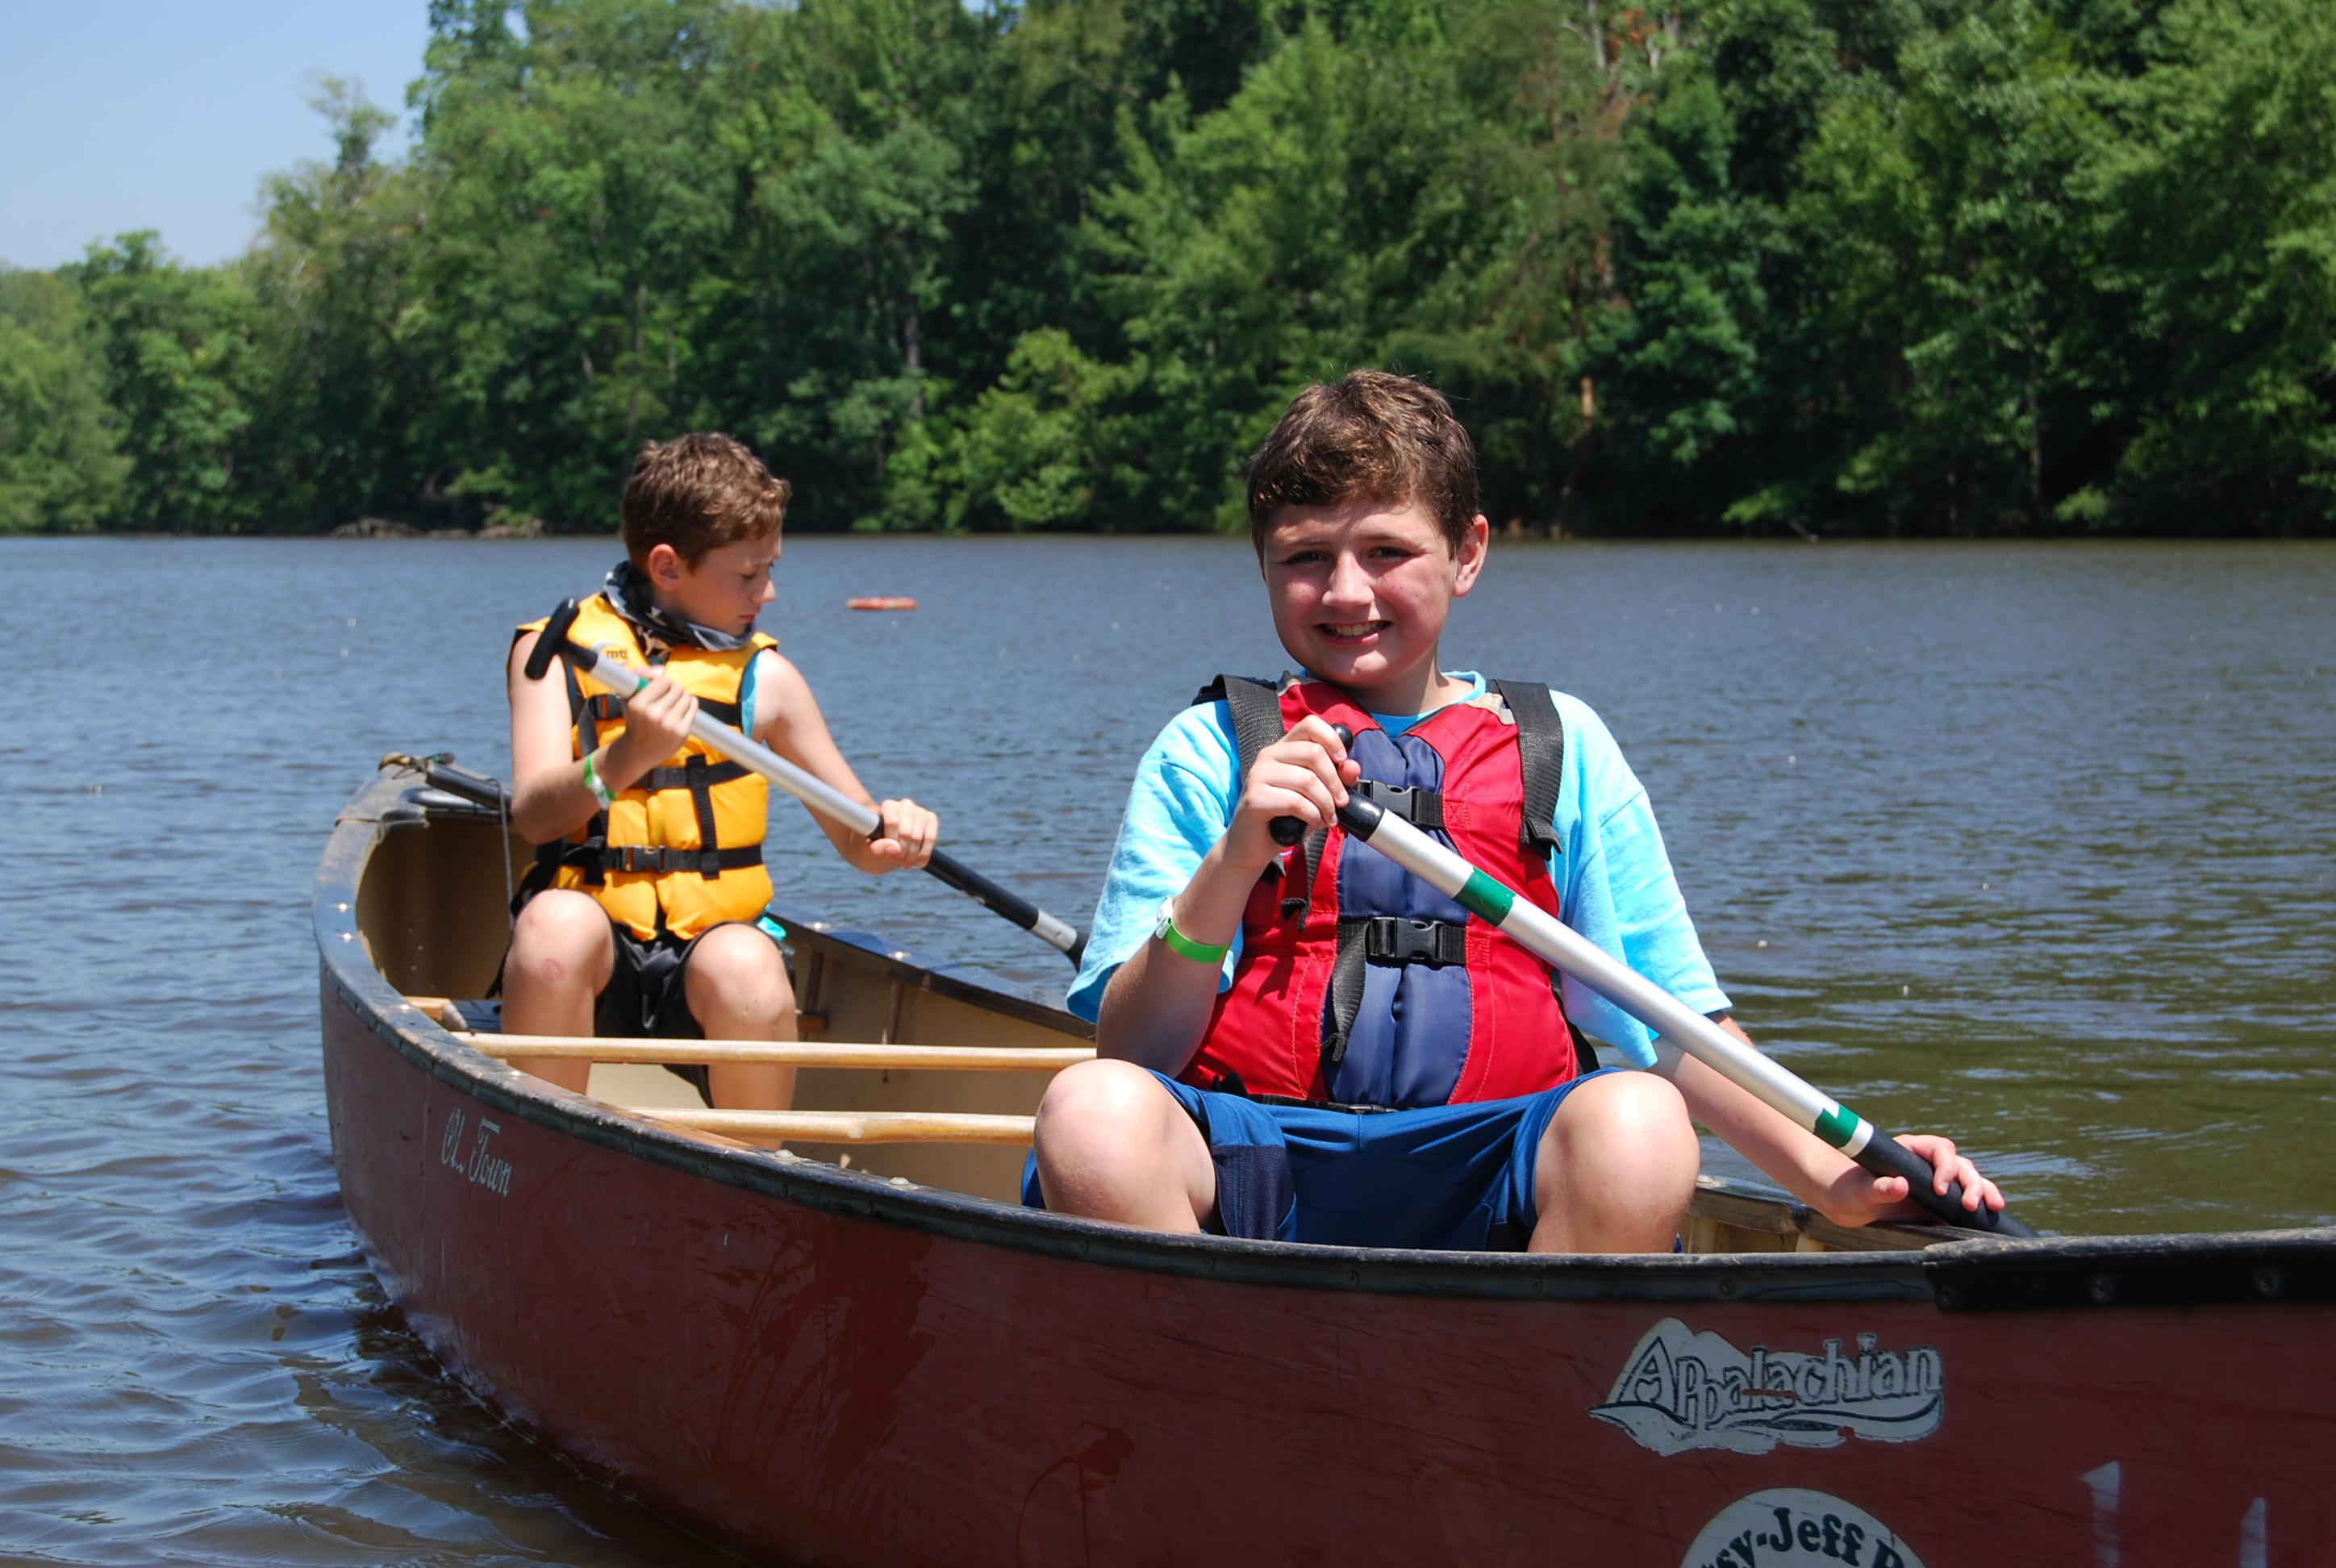 Two boys in a canoe on a lake paddling.